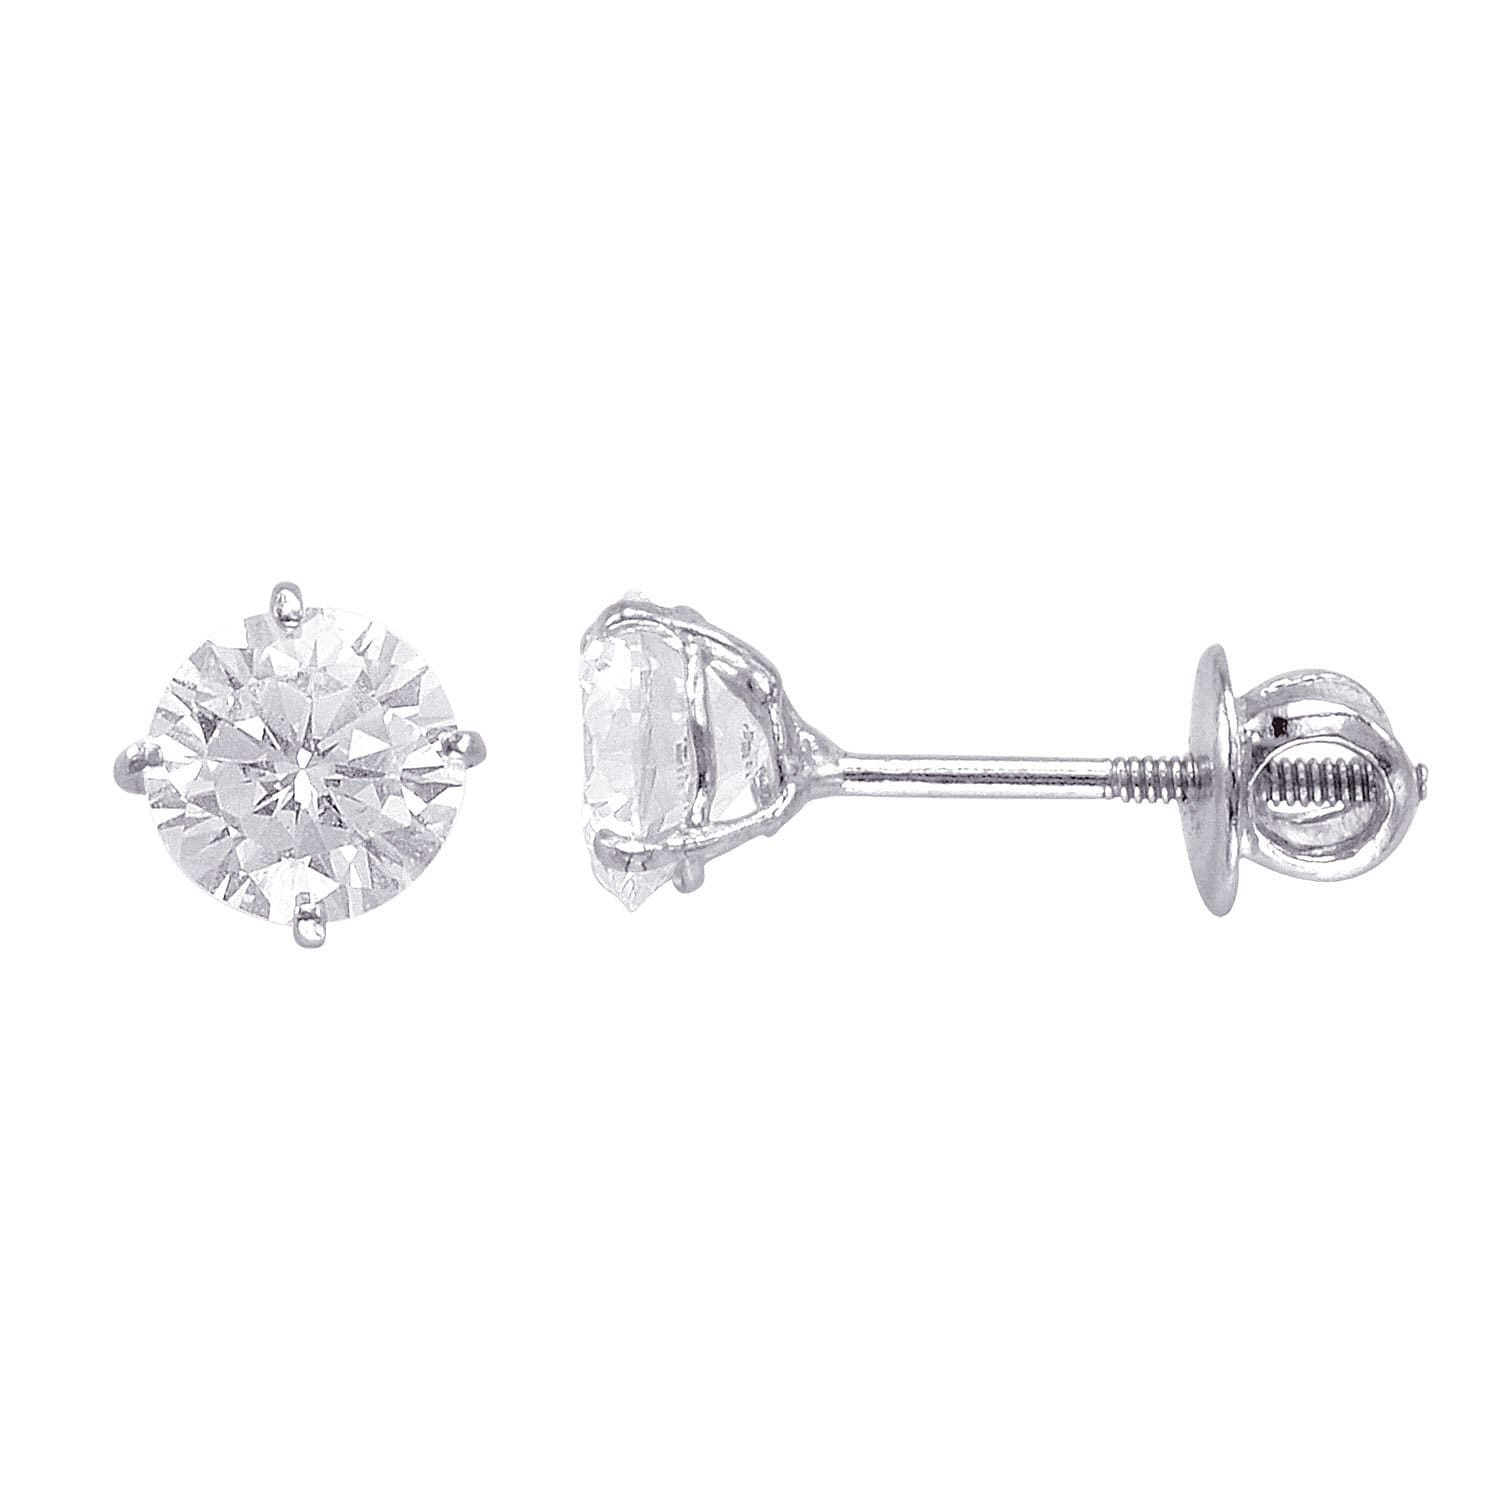 post long earrings on stud overstock product cz zirconia solid back superbright over screw shipping jewelry extra cubic round free watches orders gold